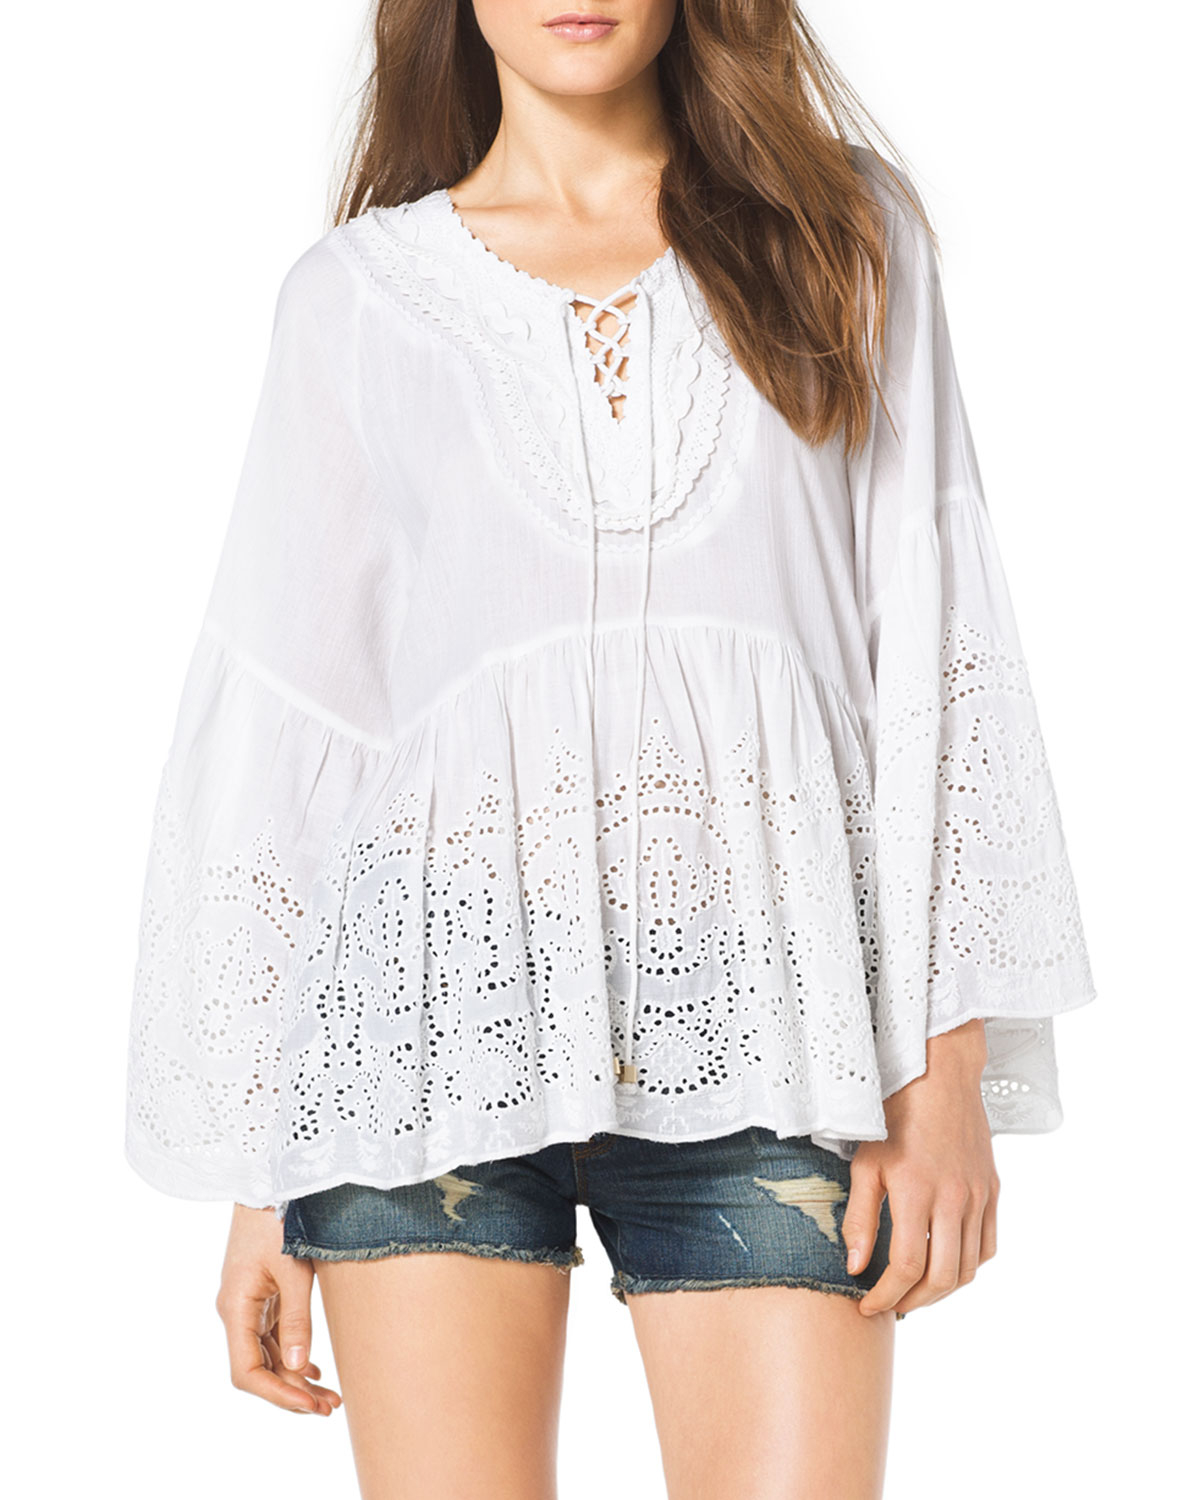 c53e60fbe48486 MICHAEL Michael Kors Laceupfront Eyelet Top in White - Lyst